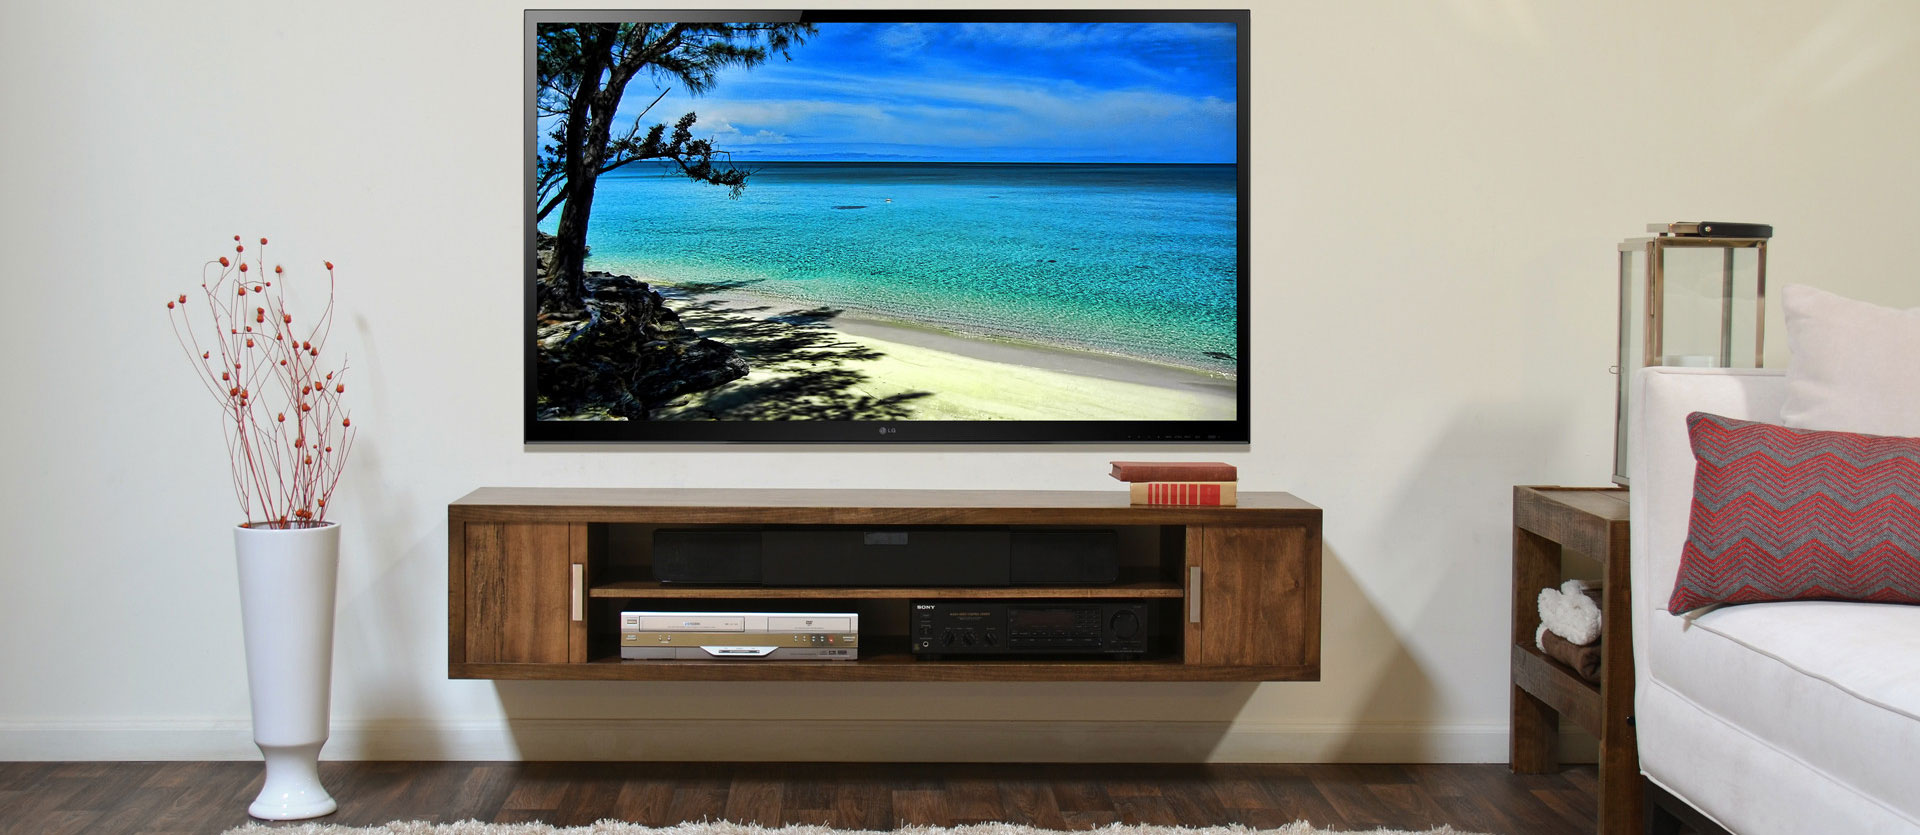 tv-wall-mounted-1024x557 Home